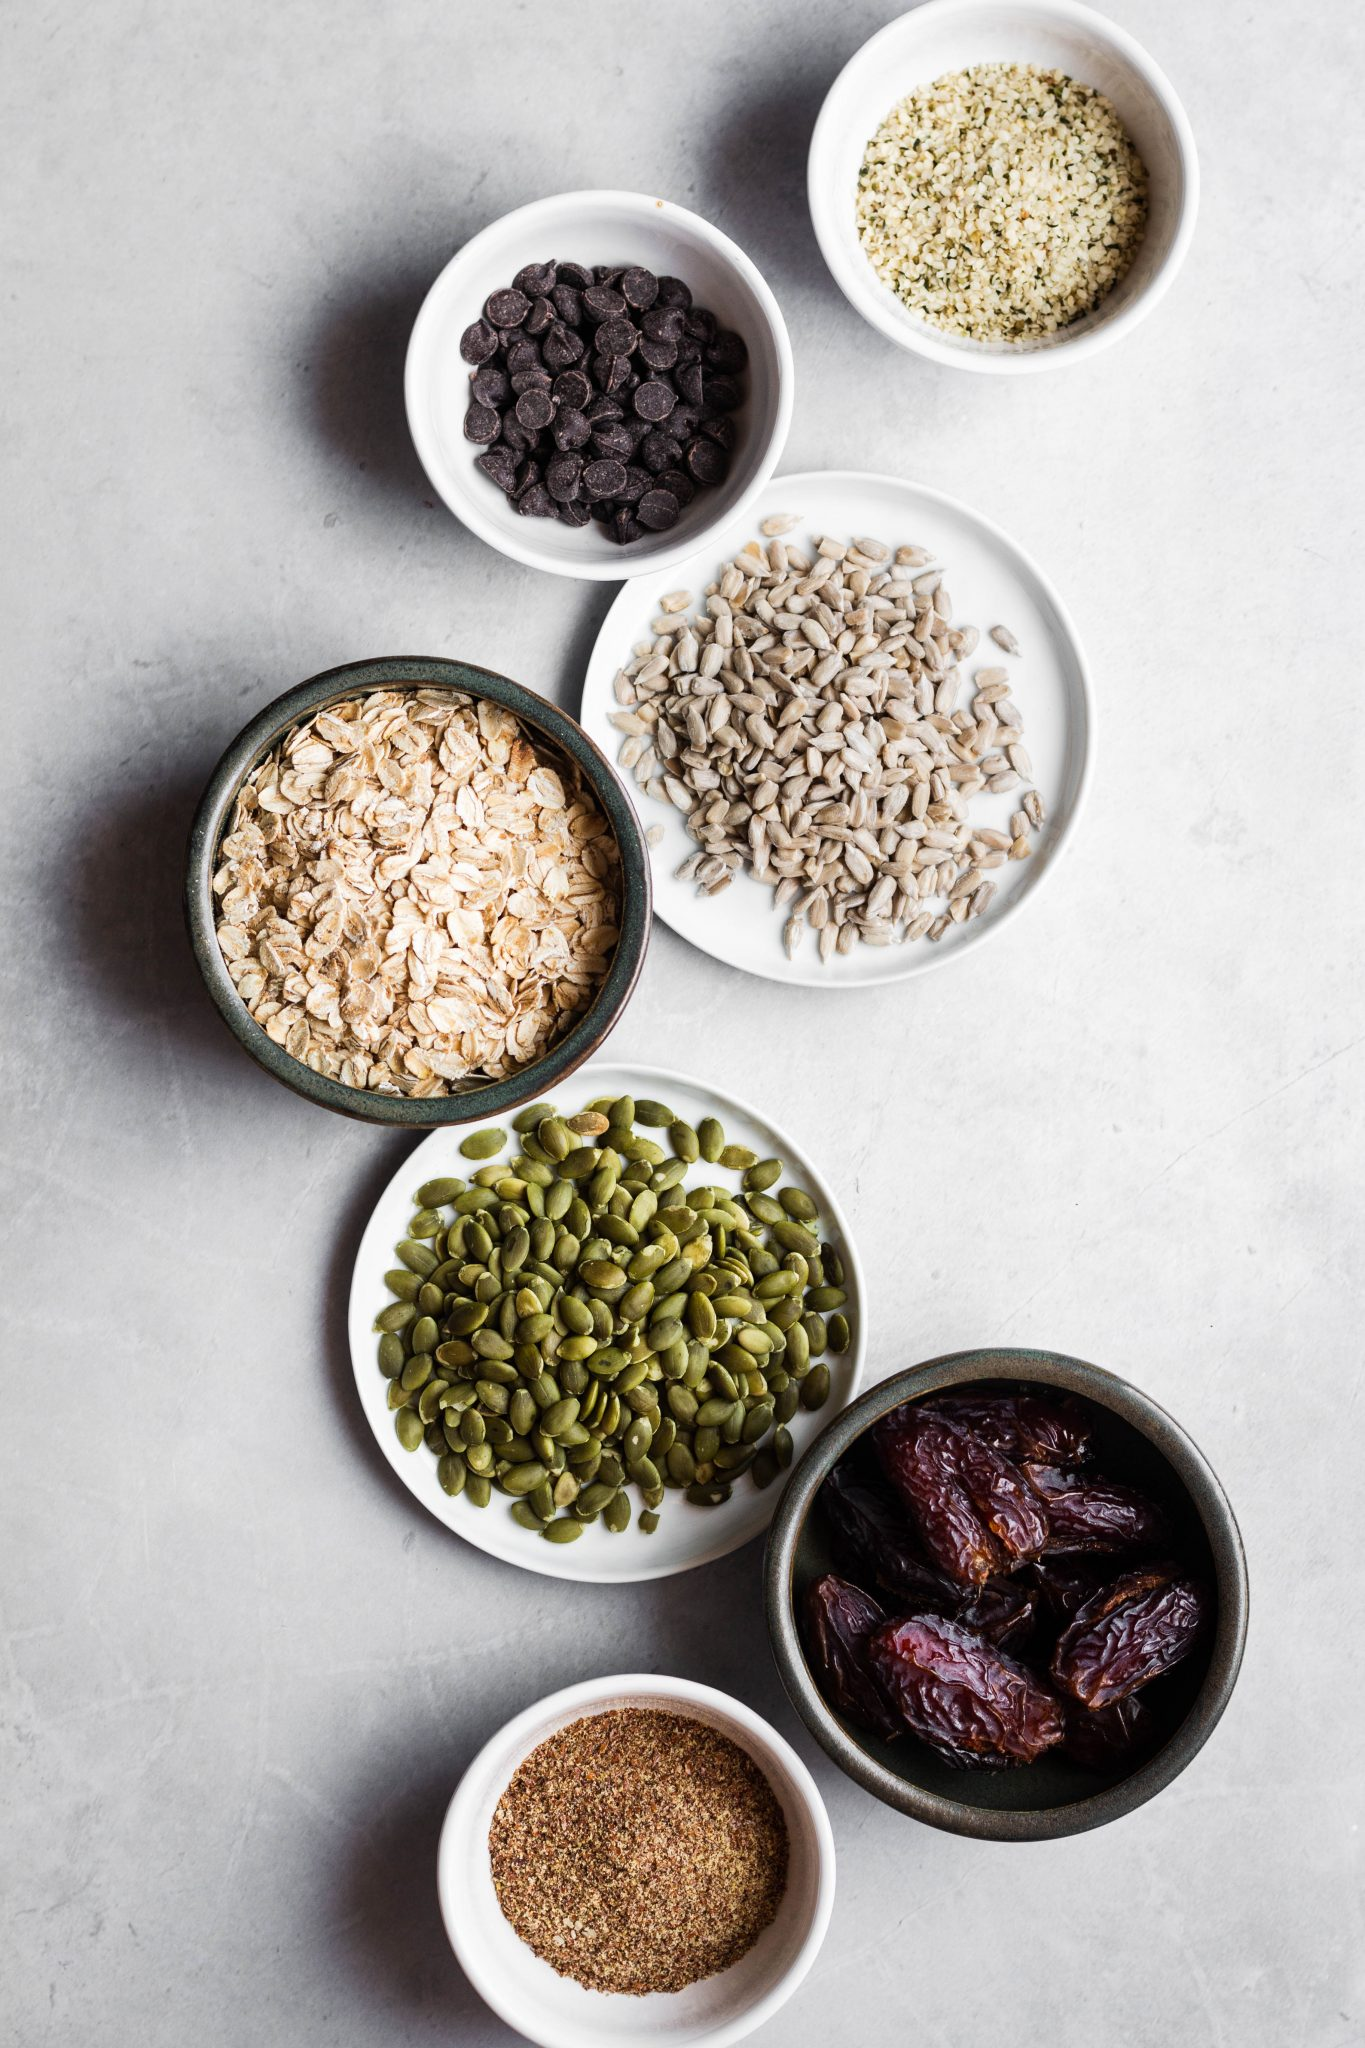 seeds, oats and dates in bowls